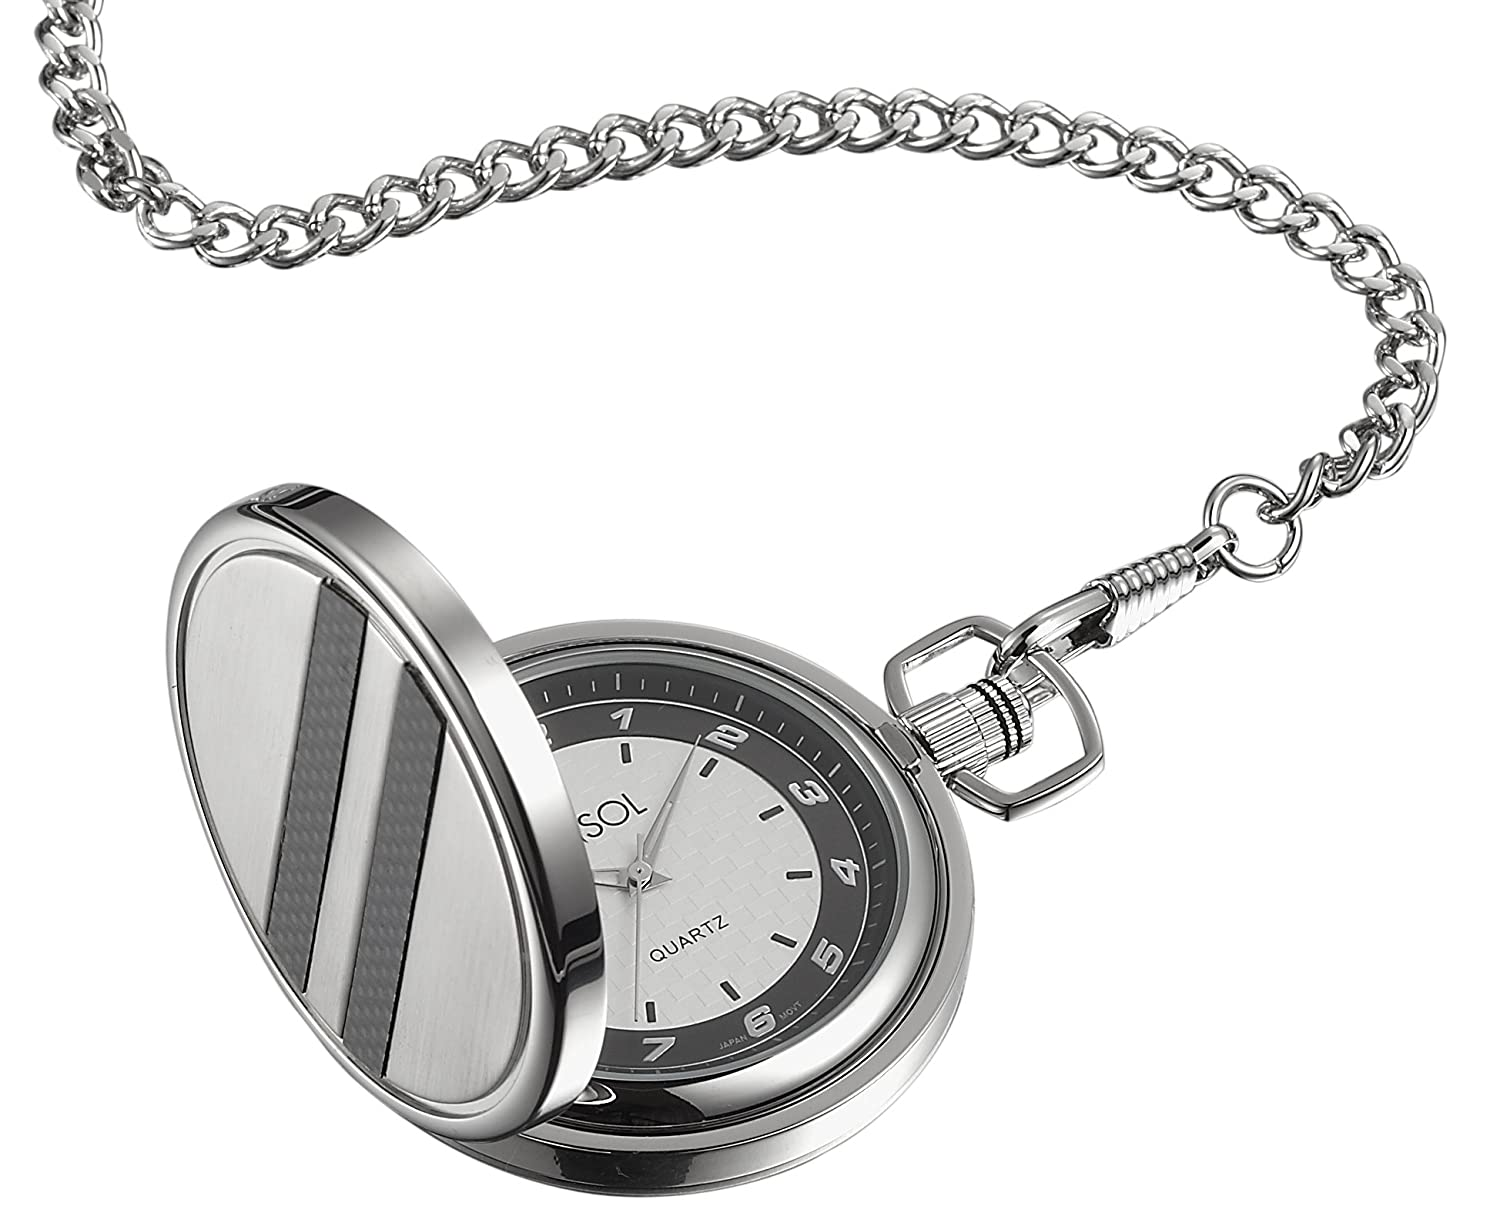 Amazon.com: Visol Turbo White Dial Carbon Fiber & Stainless Steel Pocket Watch: Watches